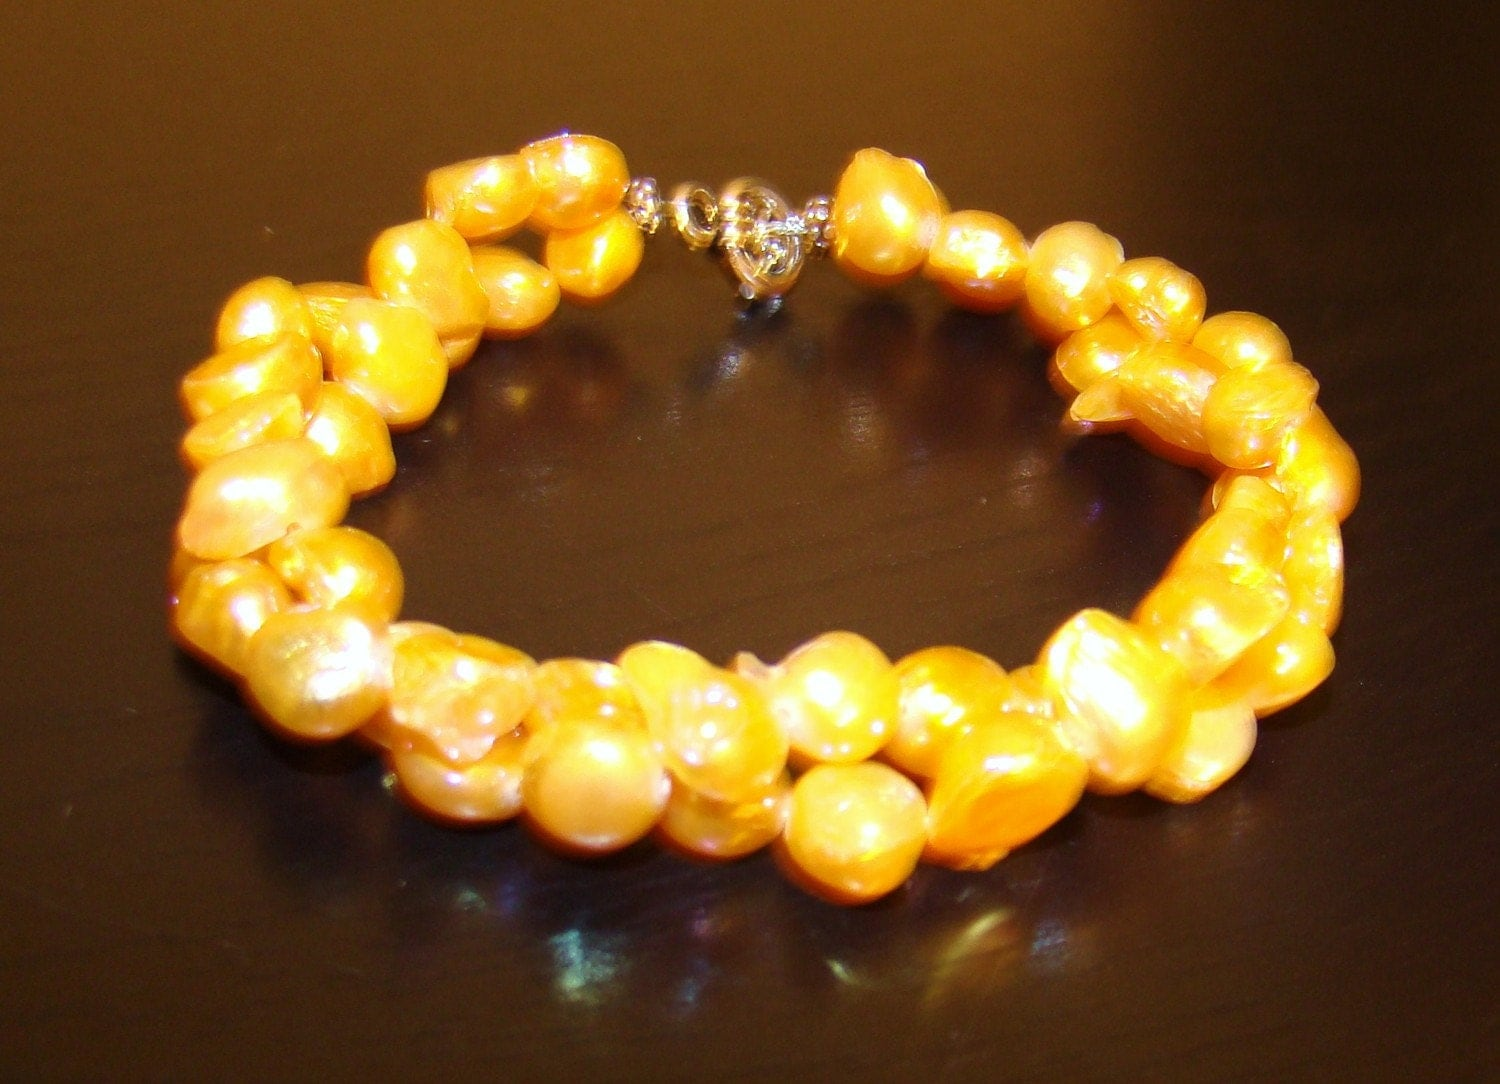 CLEARANCE- Golden Sunny Natural Pearl Rope Bracelet- CLEARANCE